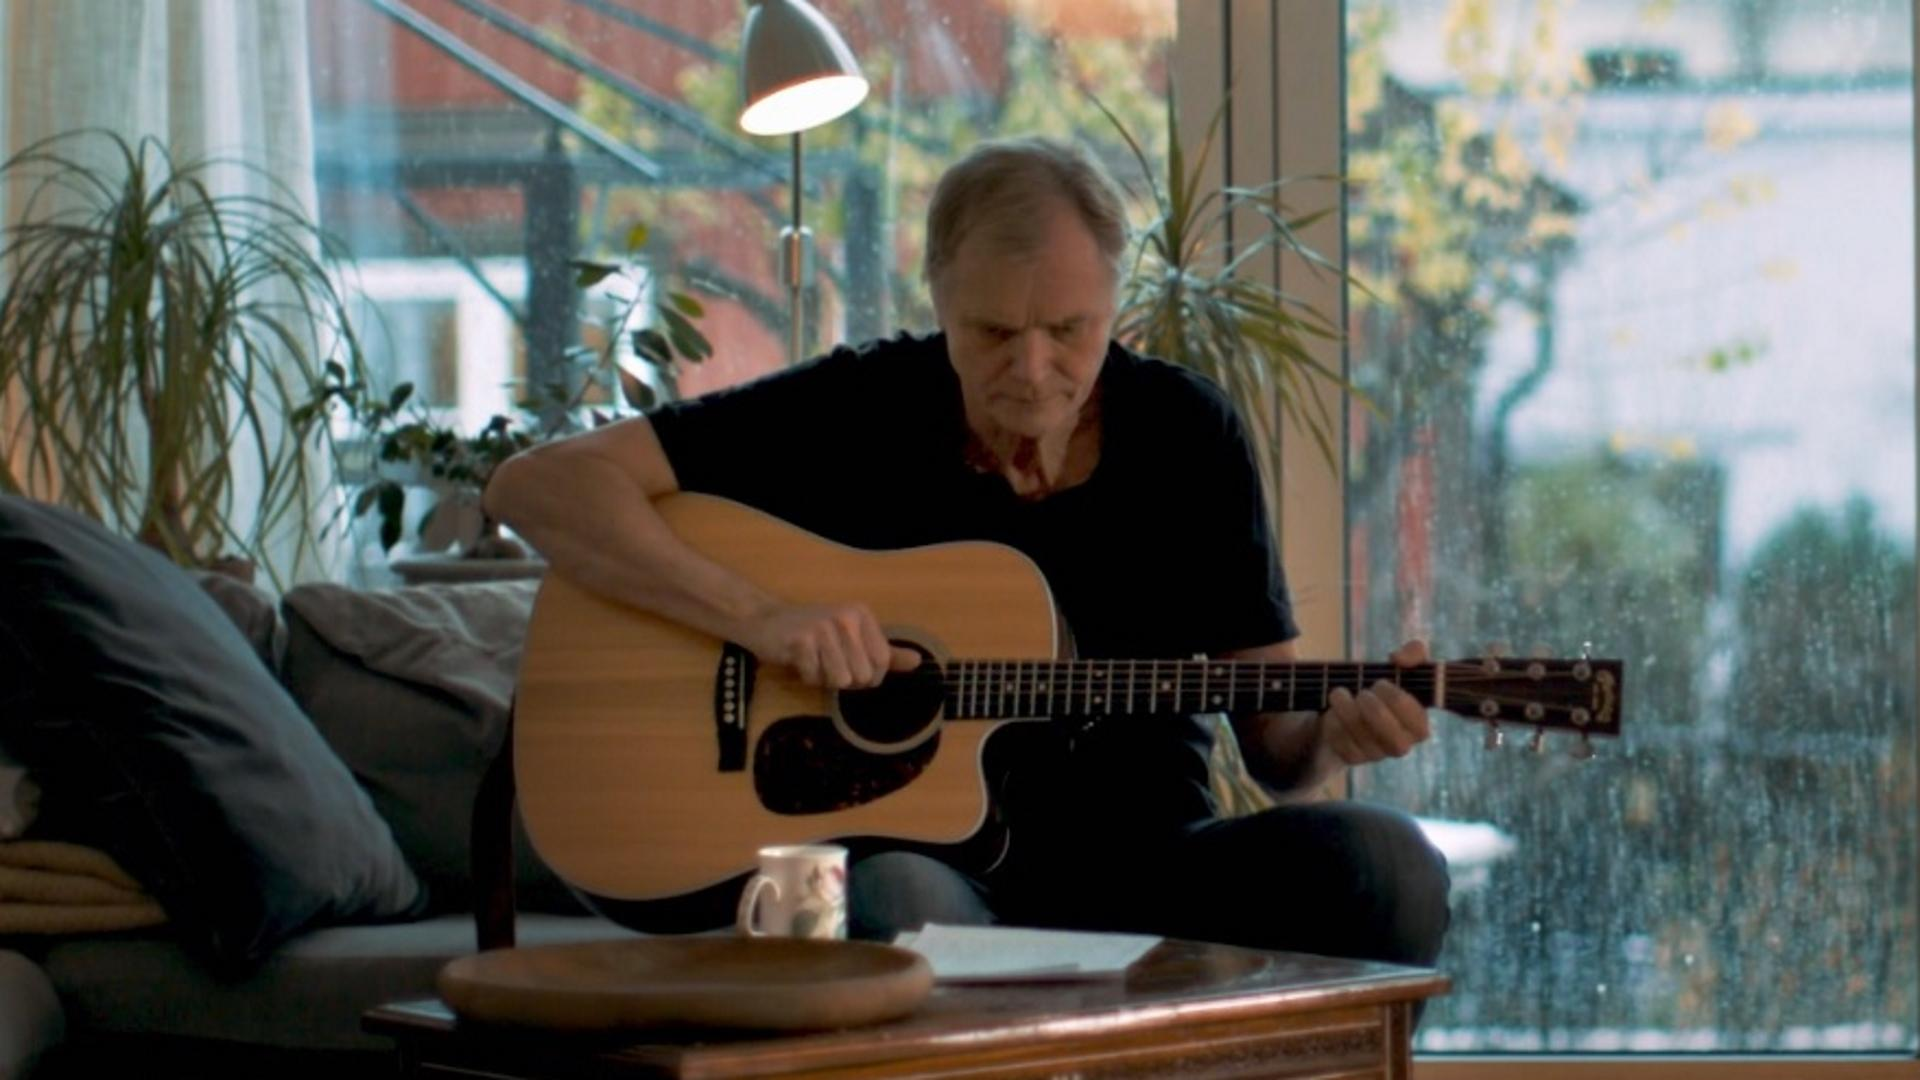 Professor Erik Fosse: musician and innovator planning his intervention center